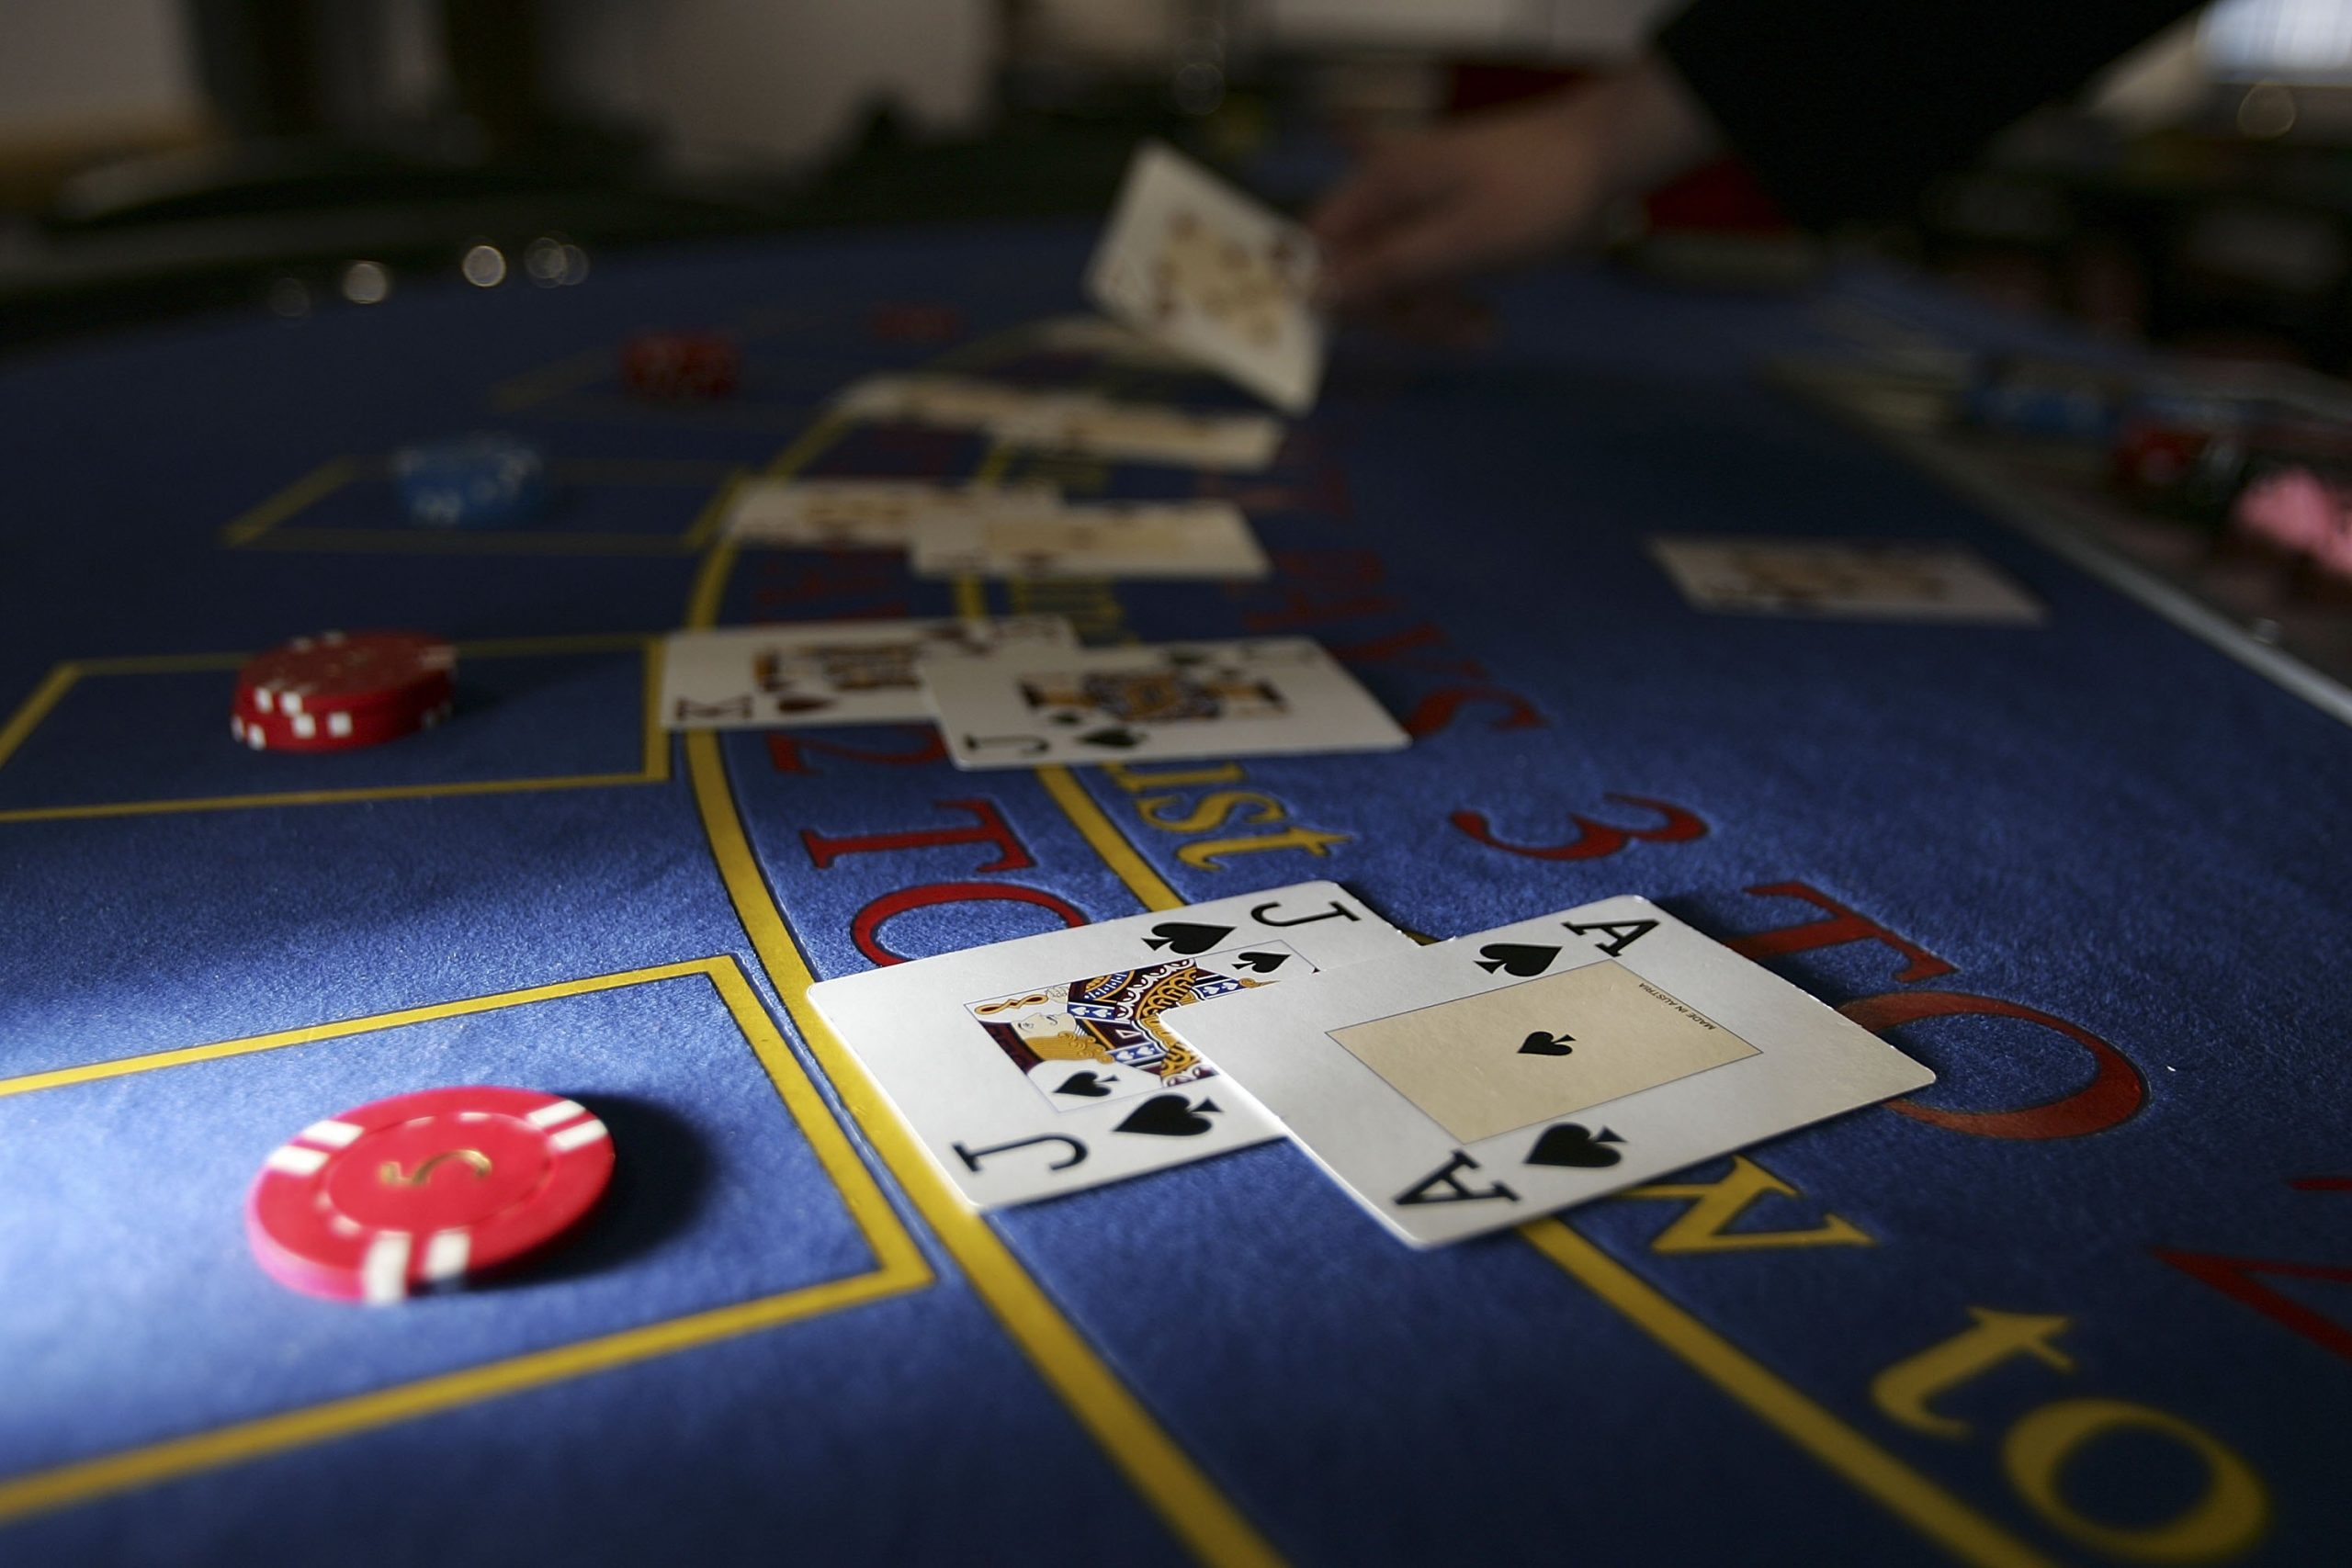 Play Free Online Slots Games To Win Real Money - Gambling